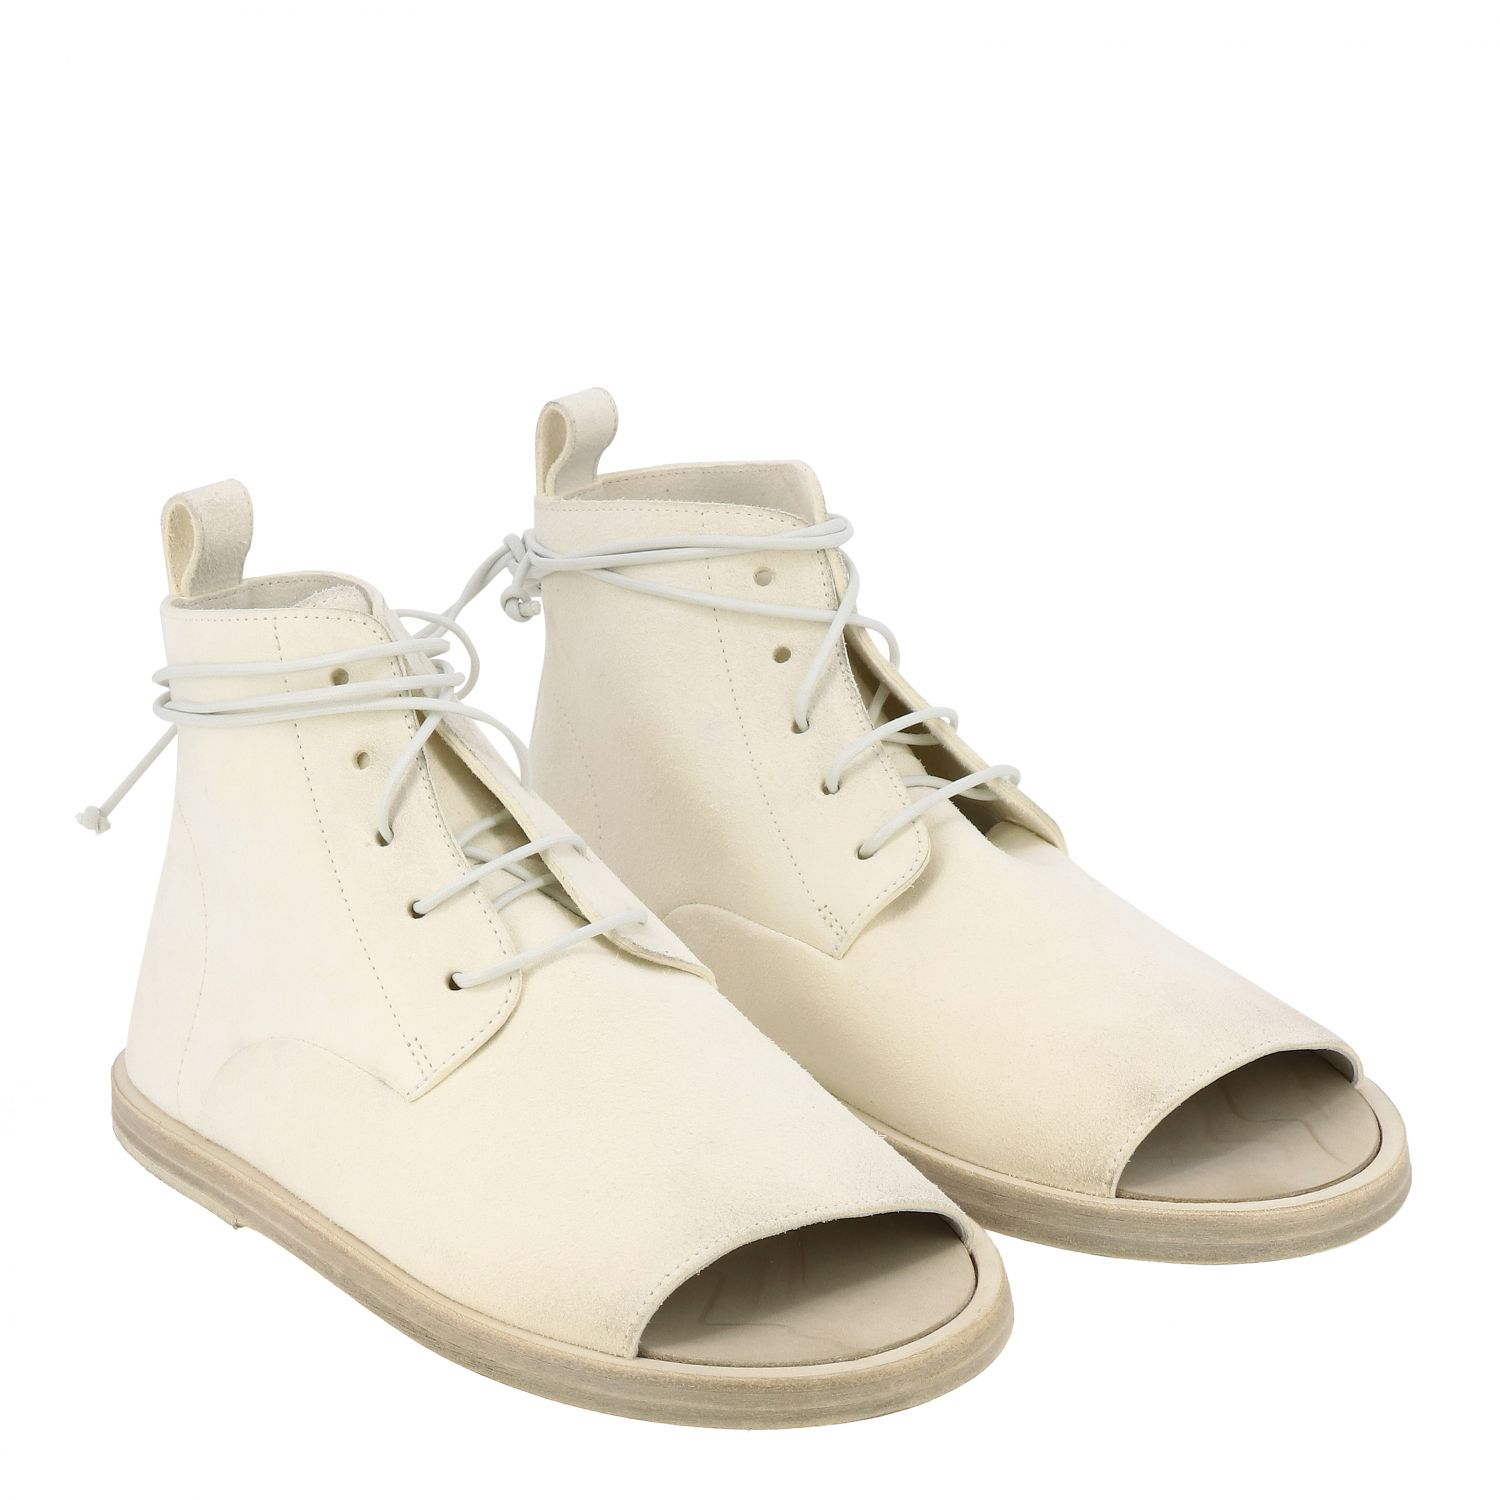 Sandals Marsell: Sandals men Marsell white 2